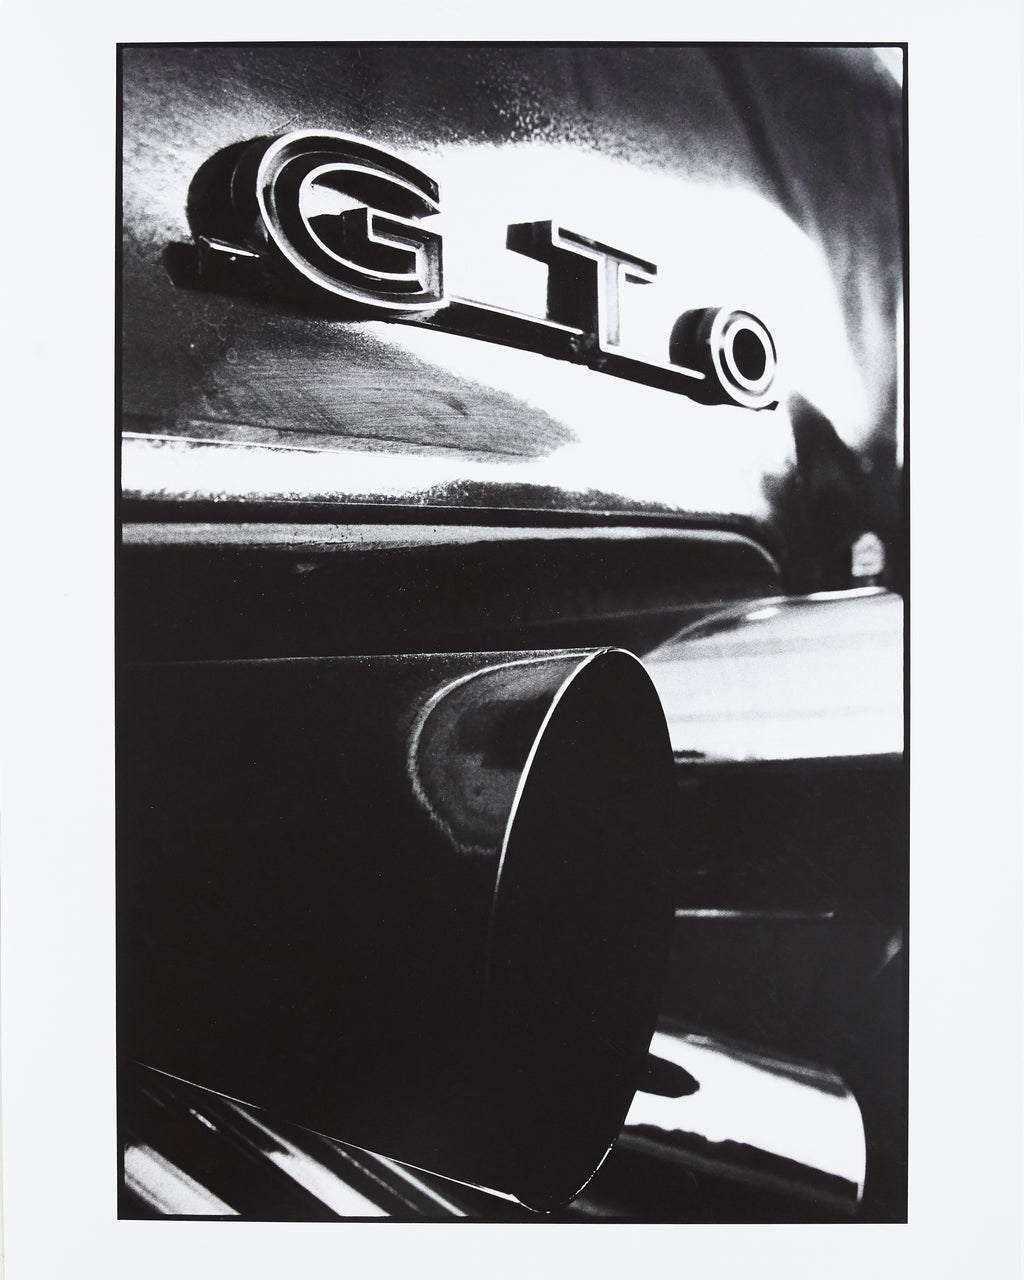 Rear end of George Barris' Kustom GTO exhaust  - Original Artist Print by Dewey Nicks